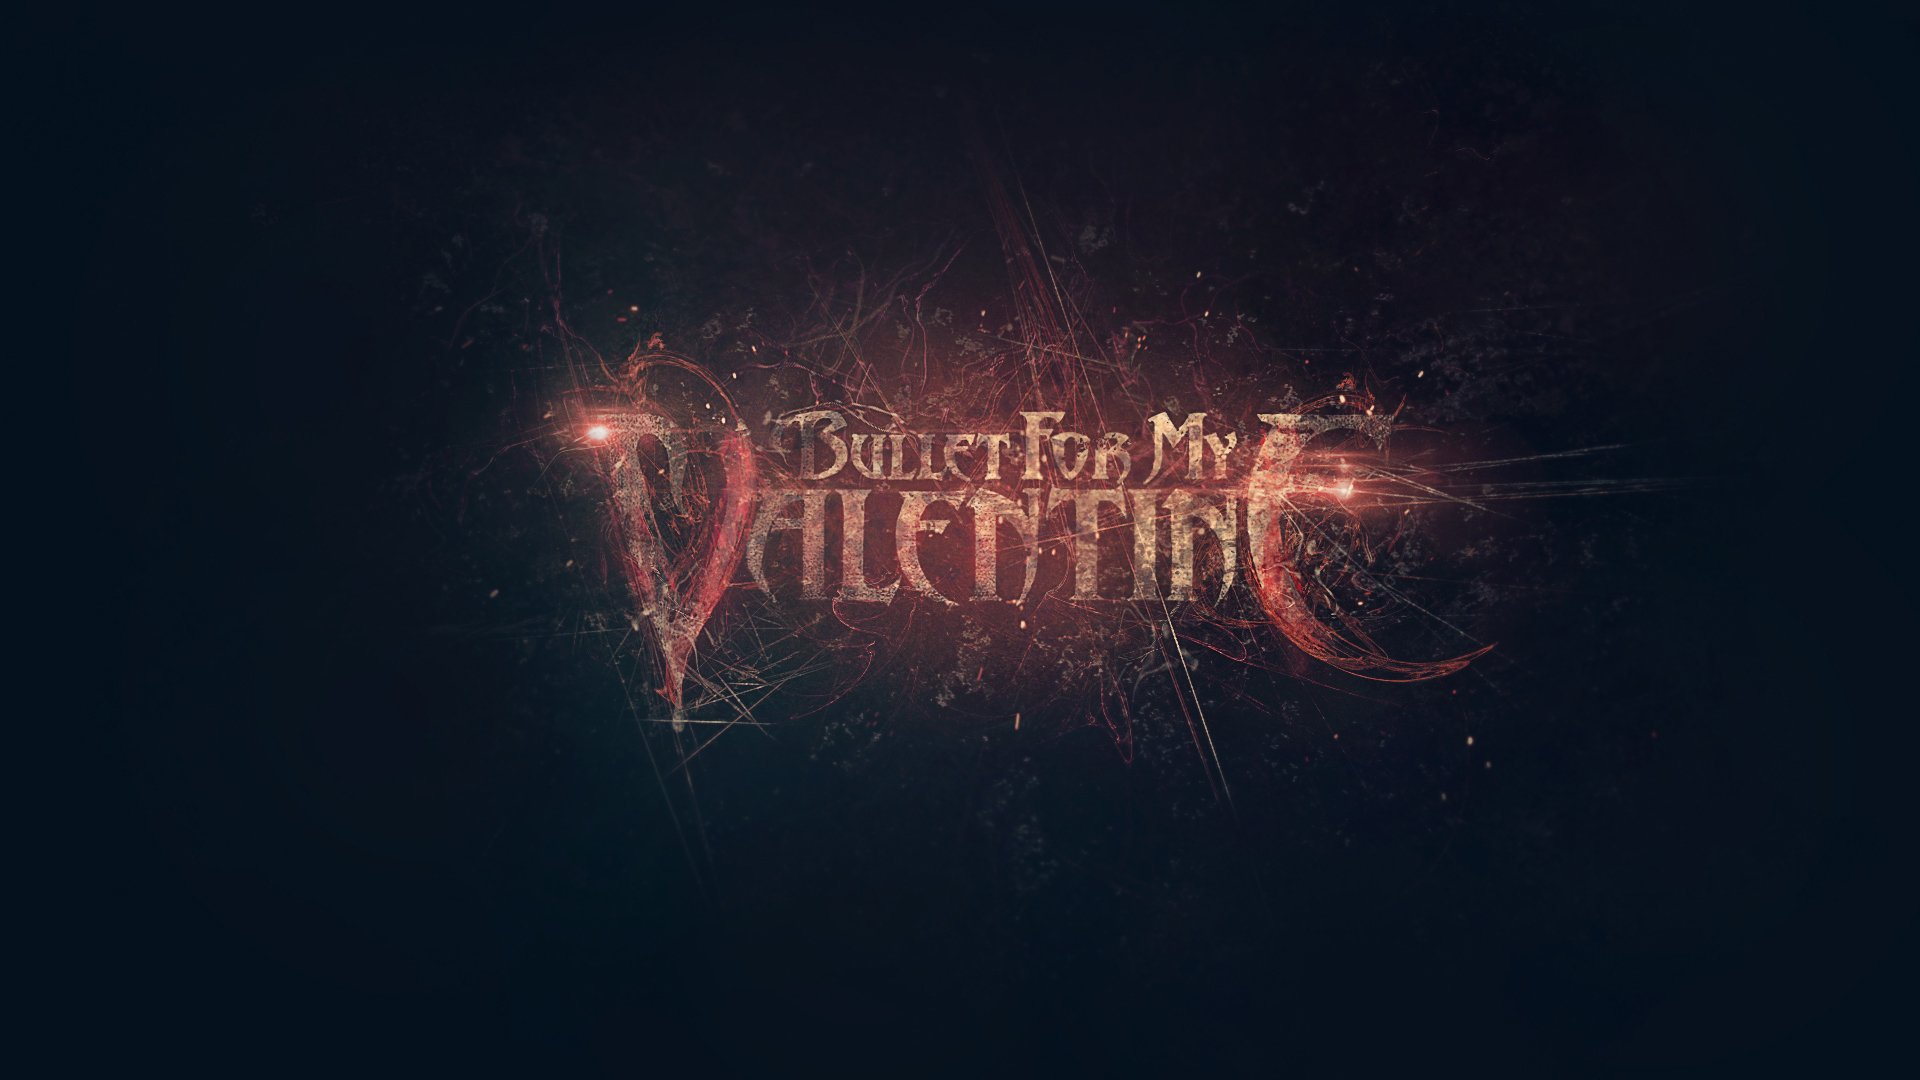 Bullet For My Valentine Hd Wallpaper Background Image